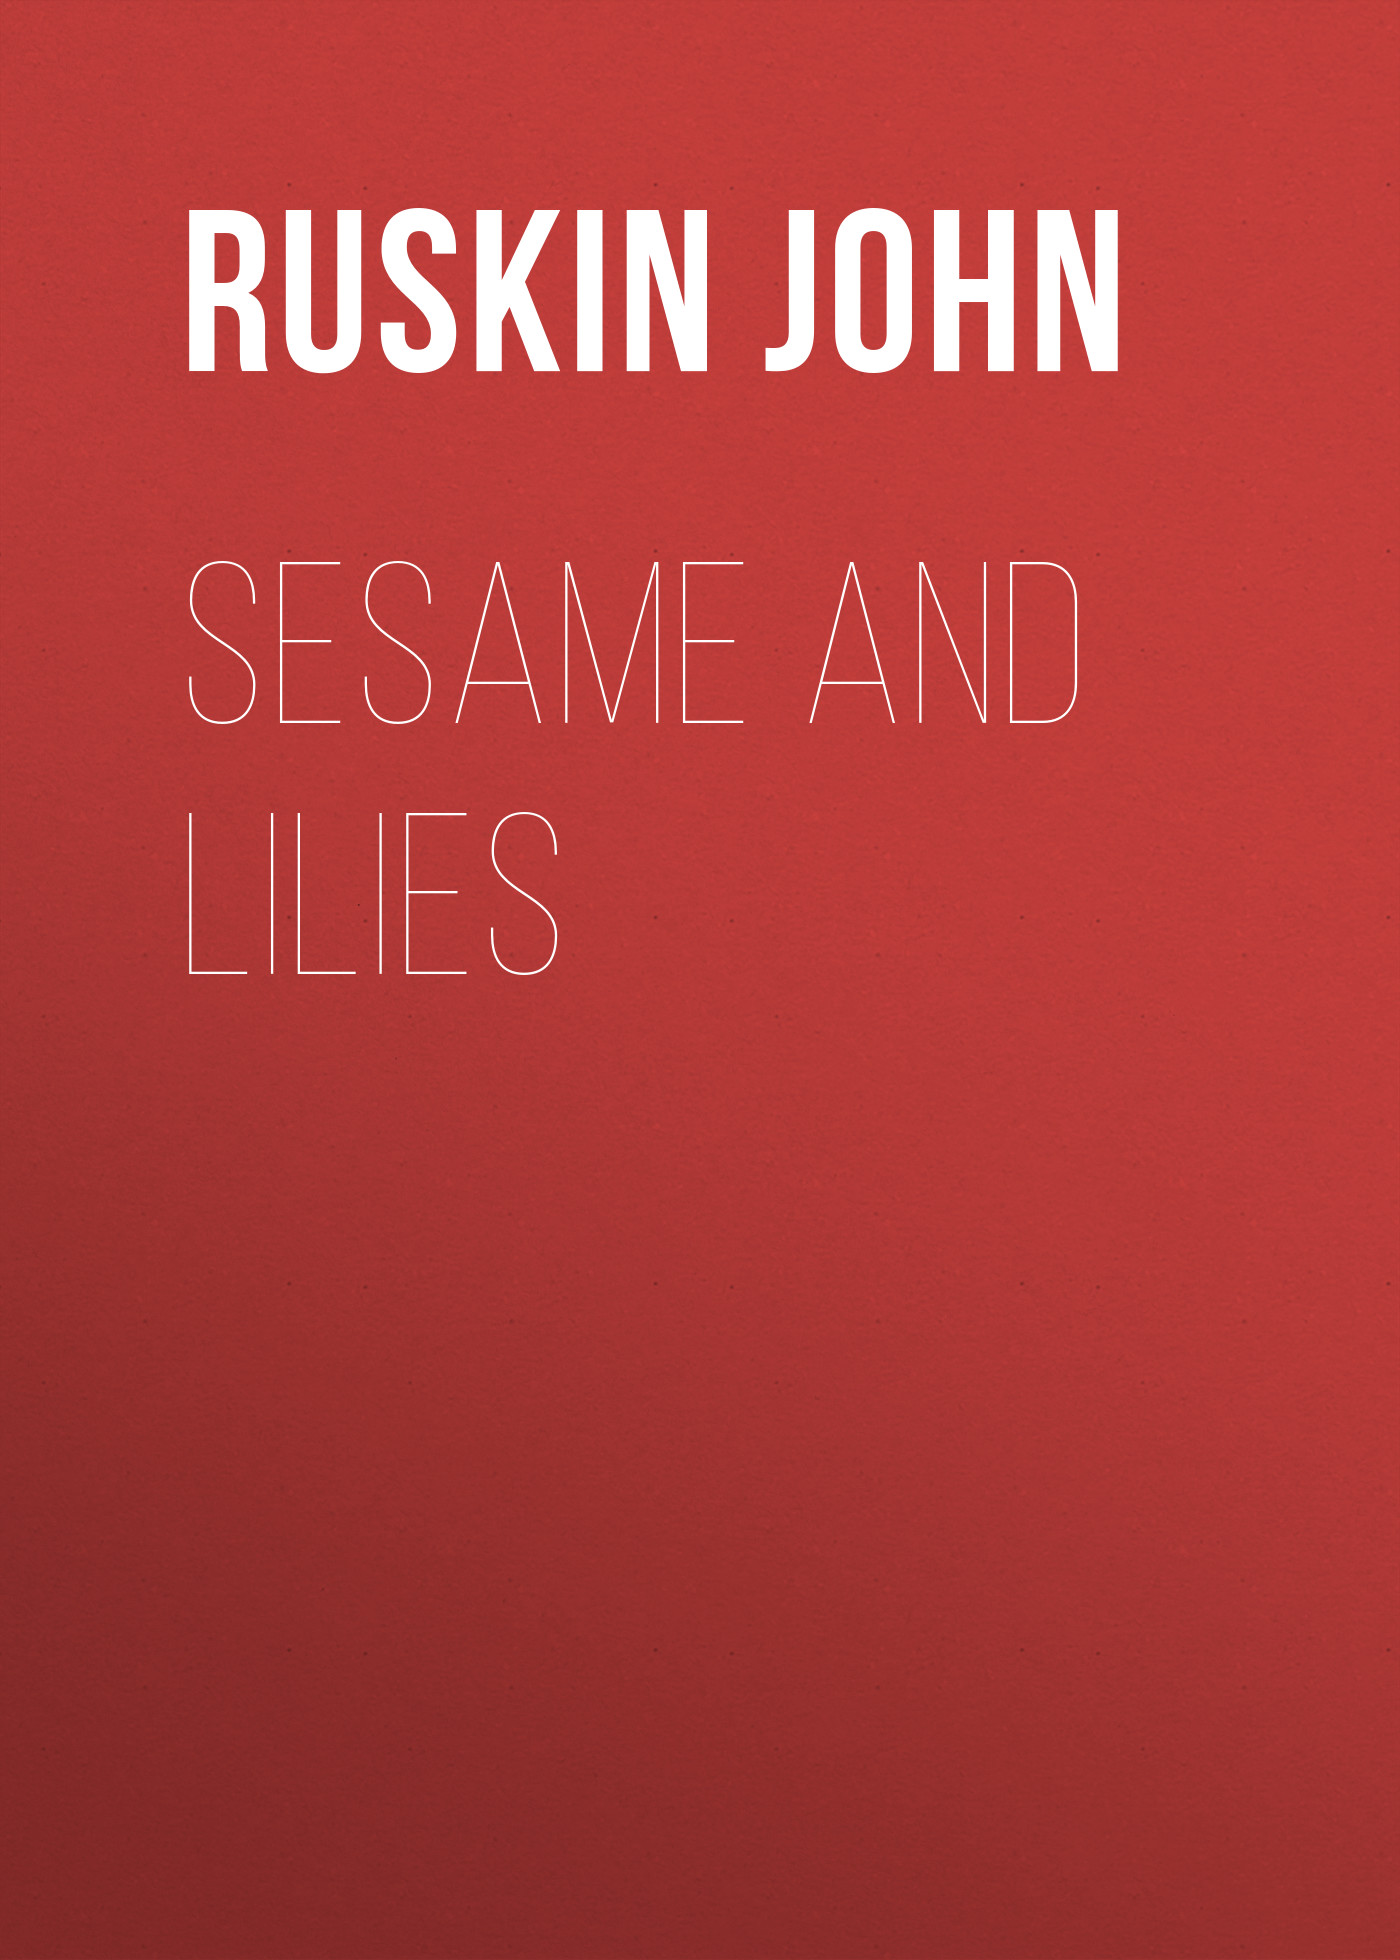 Ruskin John Sesame and Lilies john ruskin sesame and lilies and the crown of wild olive